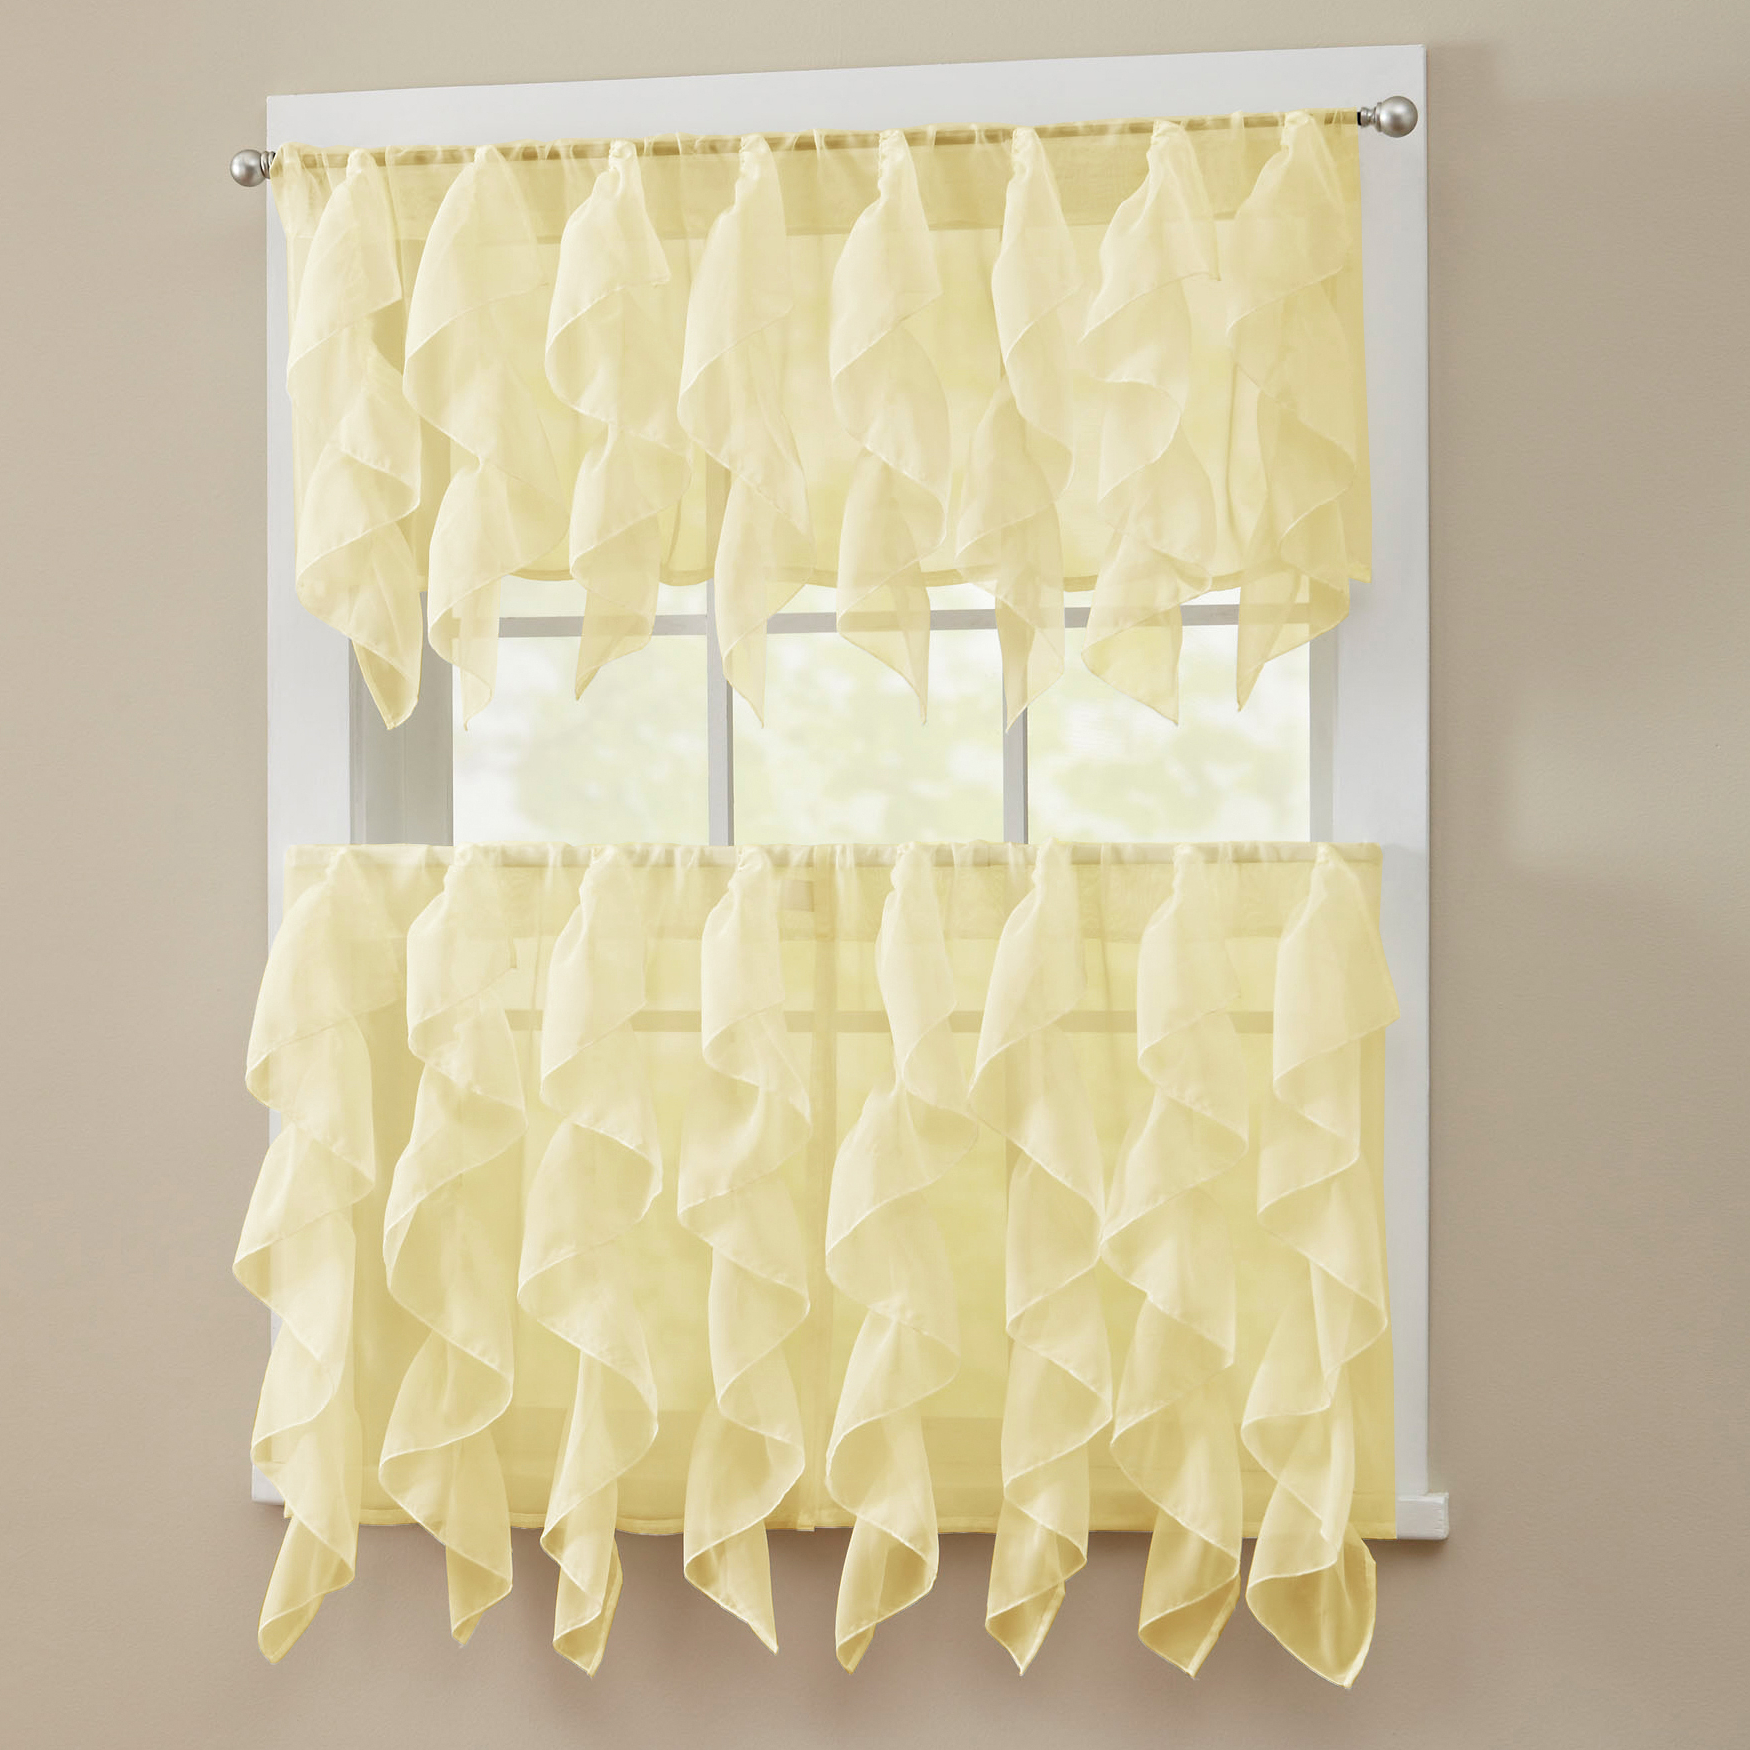 Popular Luxurious Kitchen Curtains Tiers, Shade Or Valances In Details About Sheer Voile Vertical Ruffle Window Kitchen Curtain Tiers Or Valance Maize (View 17 of 20)